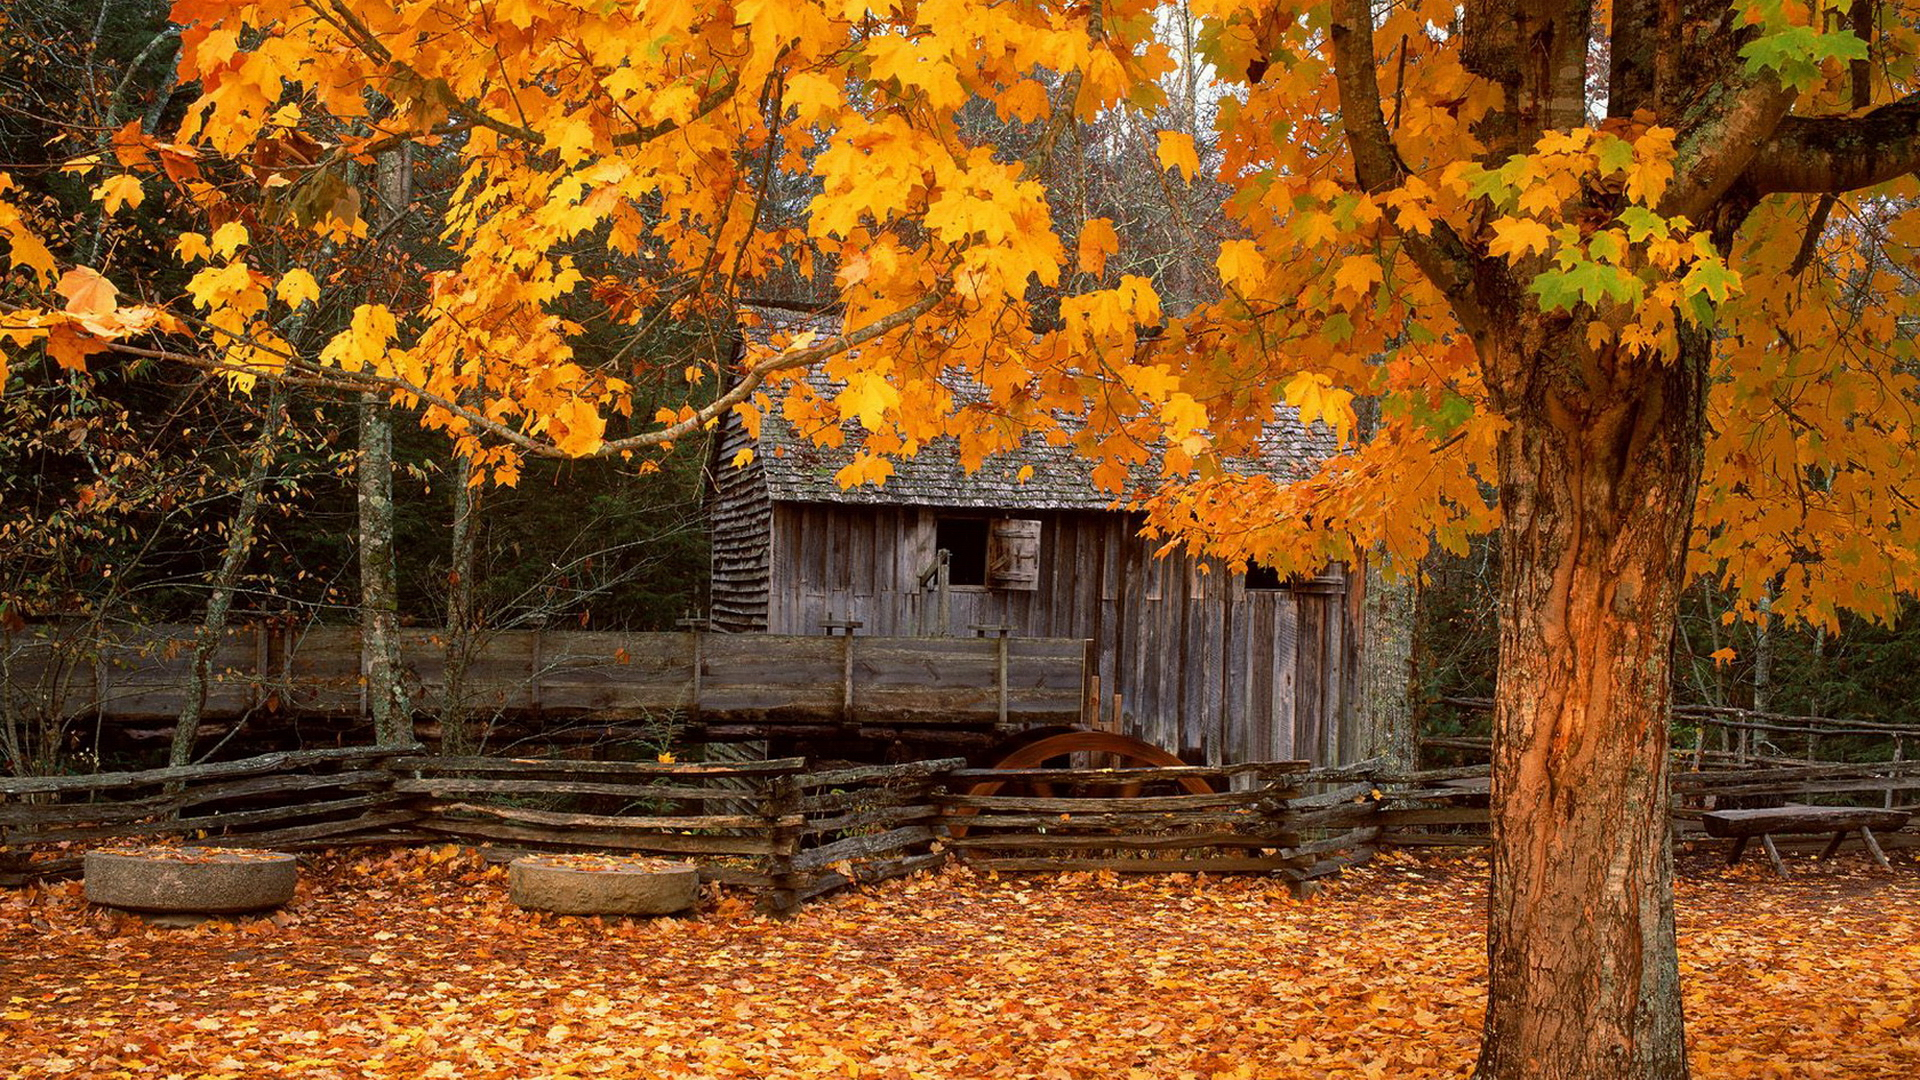 Autumn Cabin Wallpaper 1920x1080 Autumn Cabindownloads 1920x1080